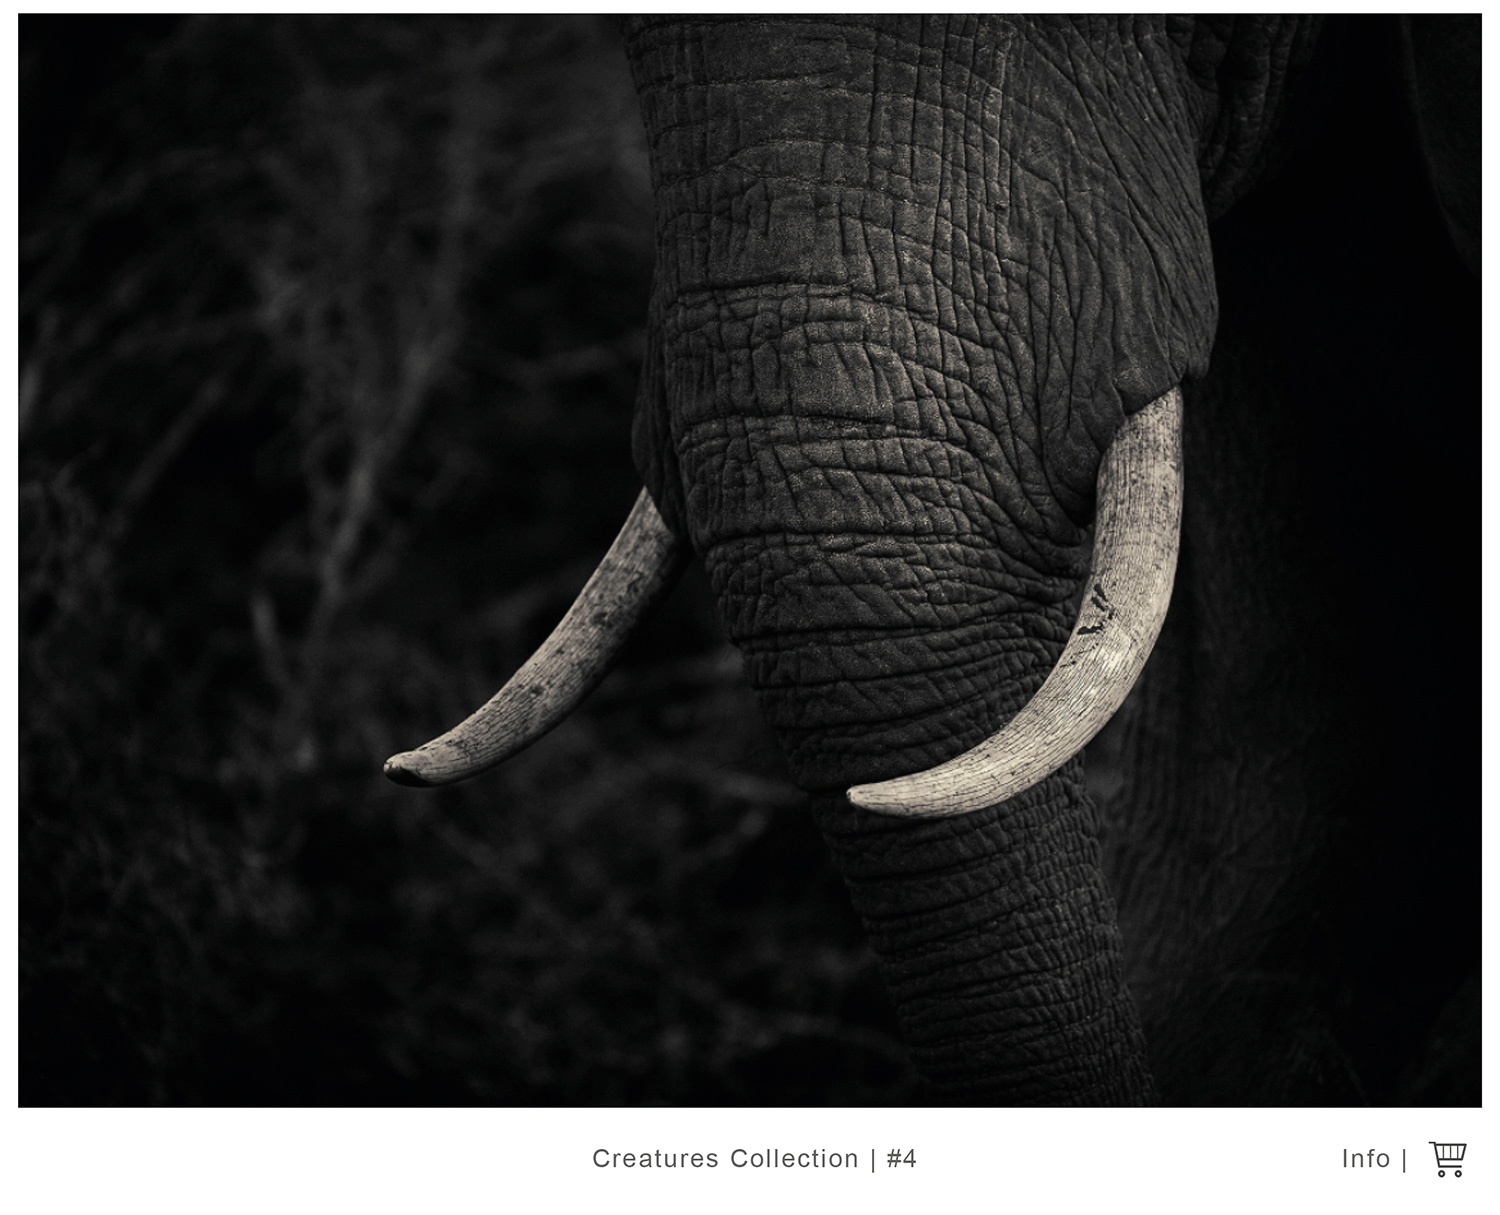 Bw animal prints fine art photography gallery cape town